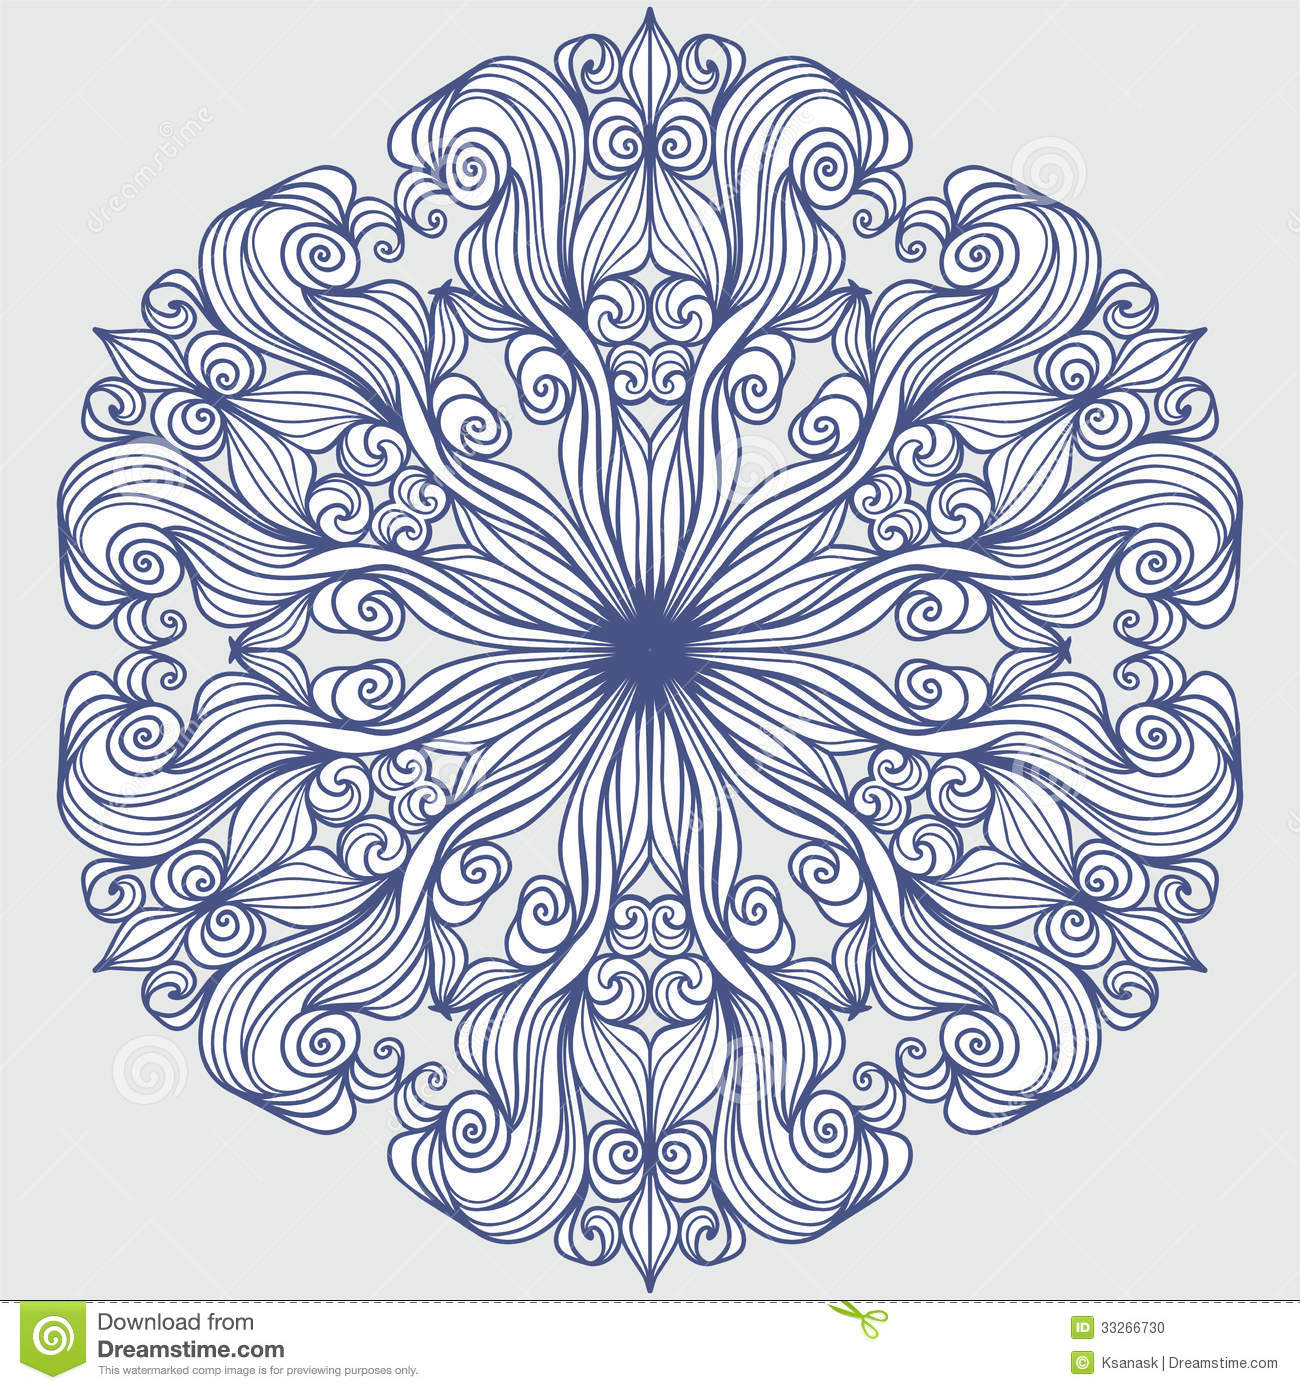 Abstract Line Art Design : Design element round pattern stock vector image